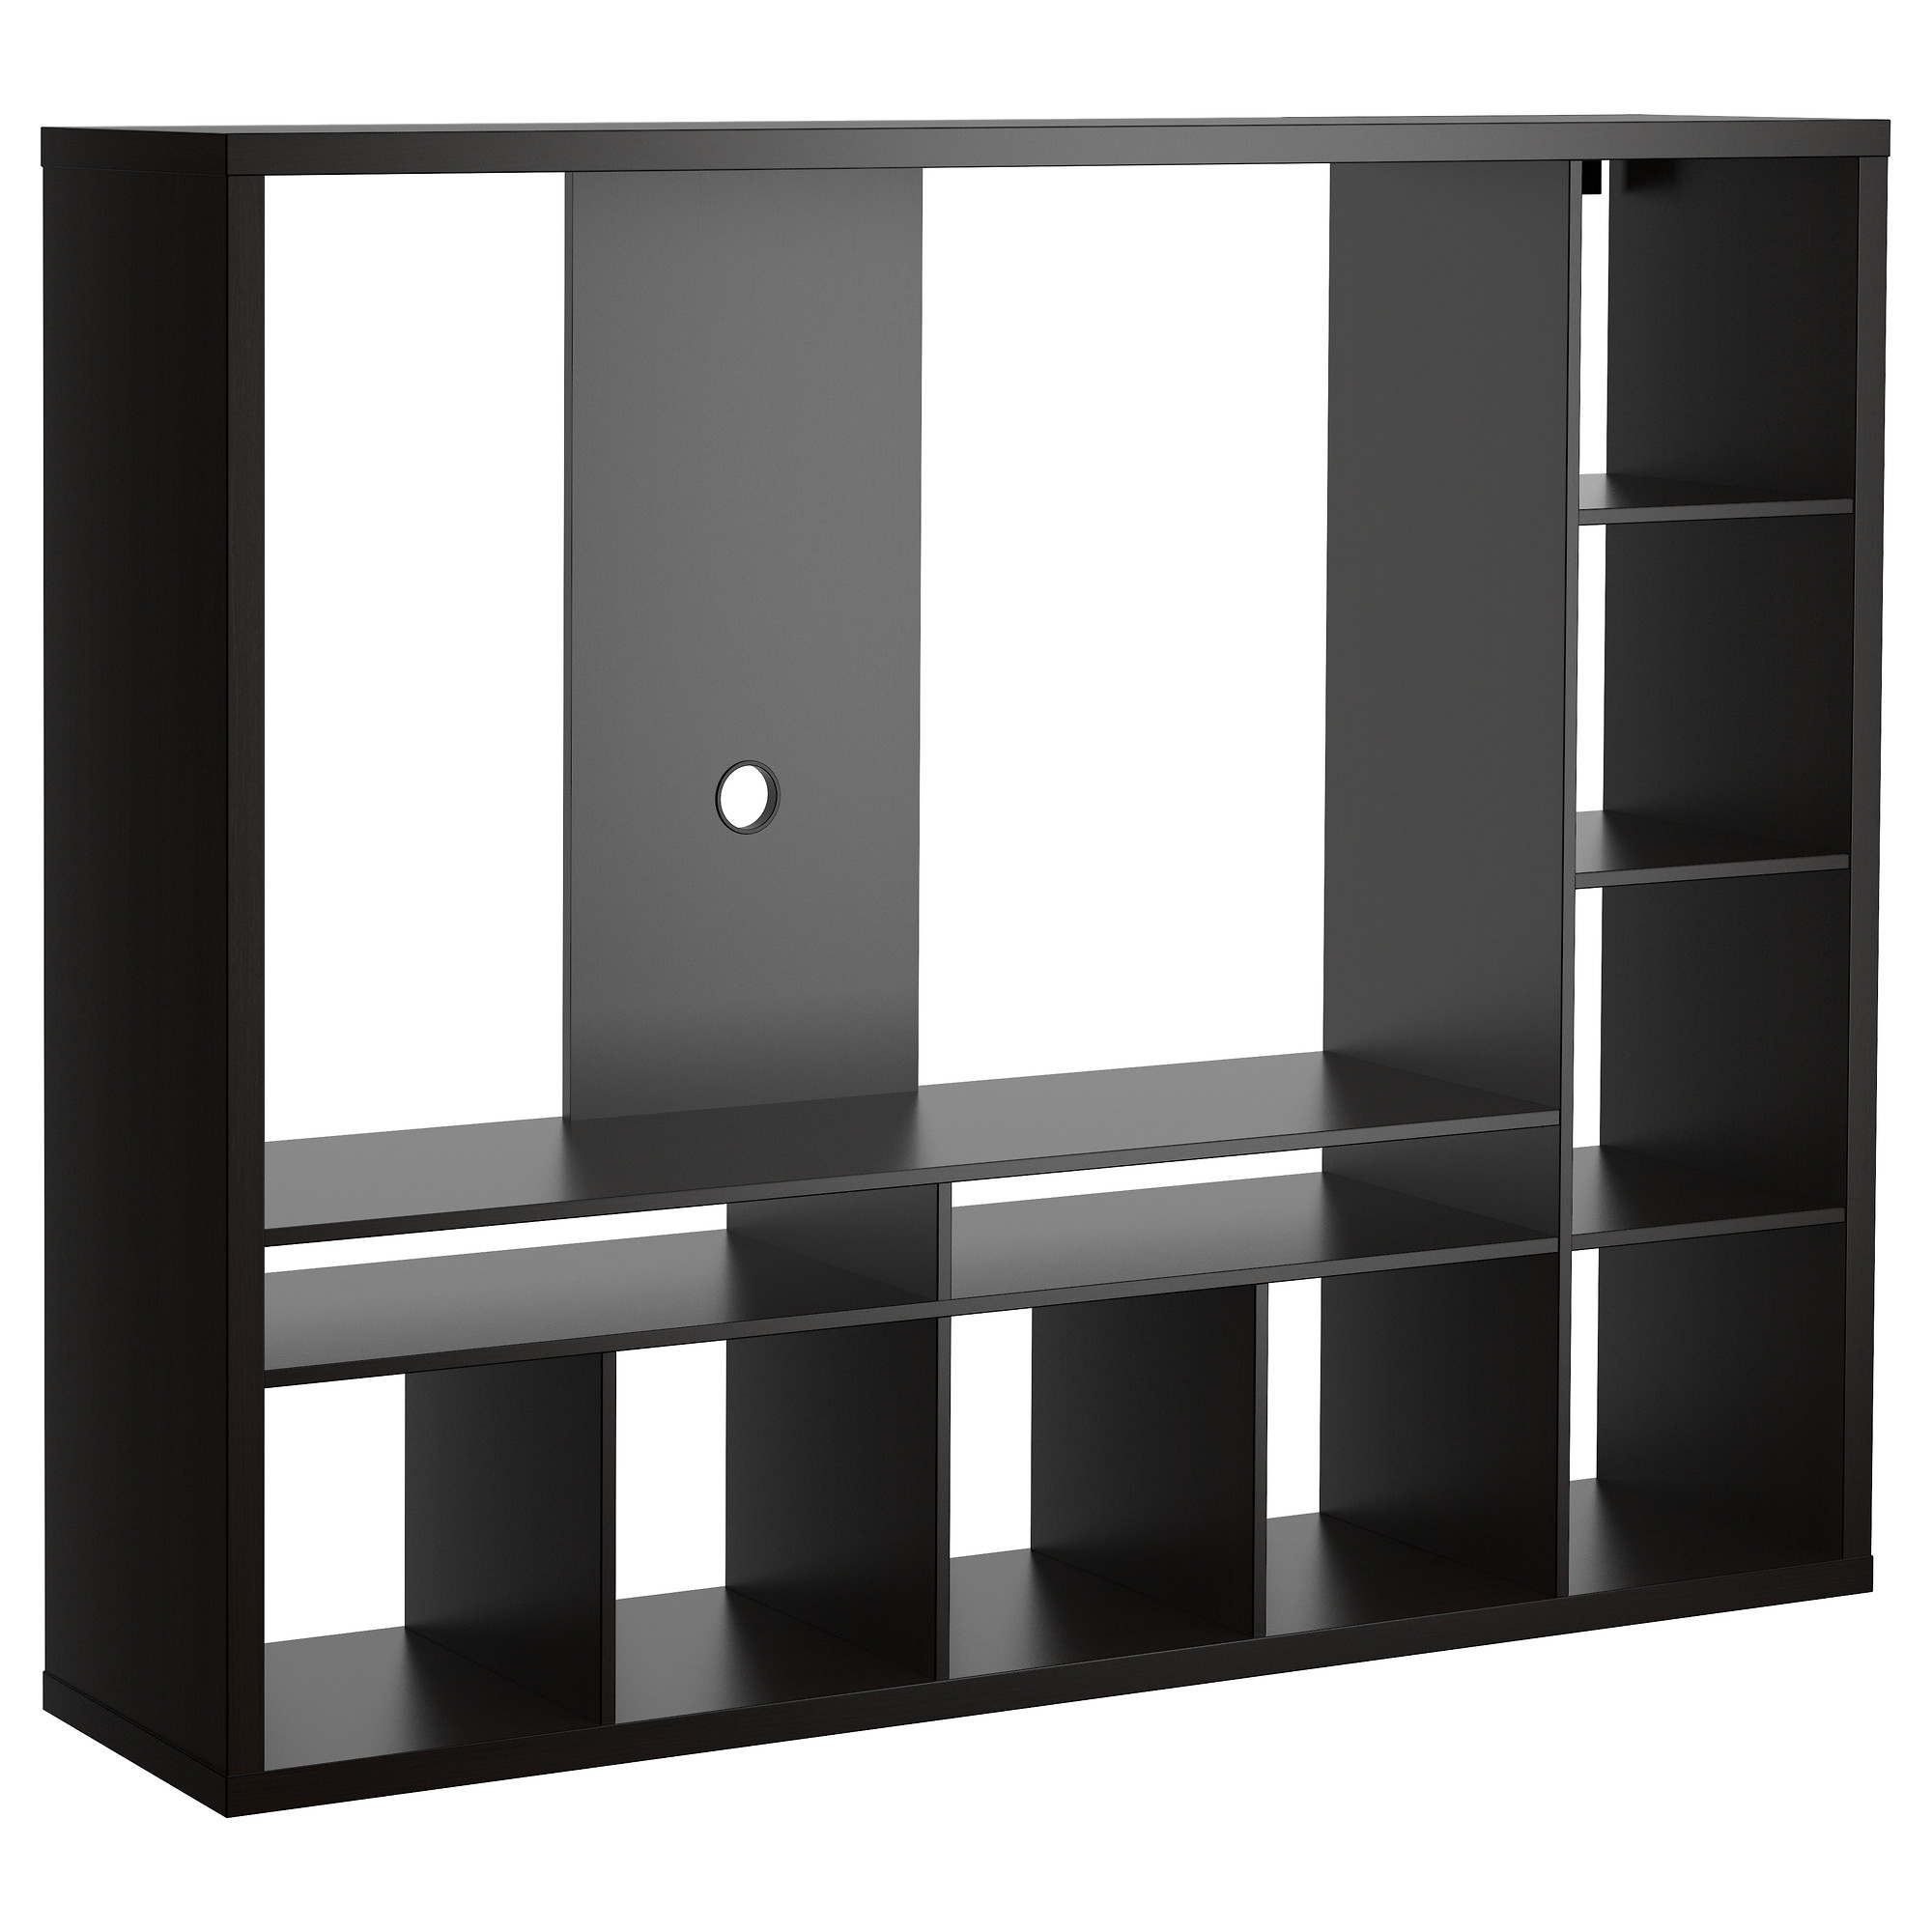 Newest Media Console Modern Entertainment Center Ikea Tv Stand Design Intended For Playroom Tv Stands (Gallery 9 of 20)